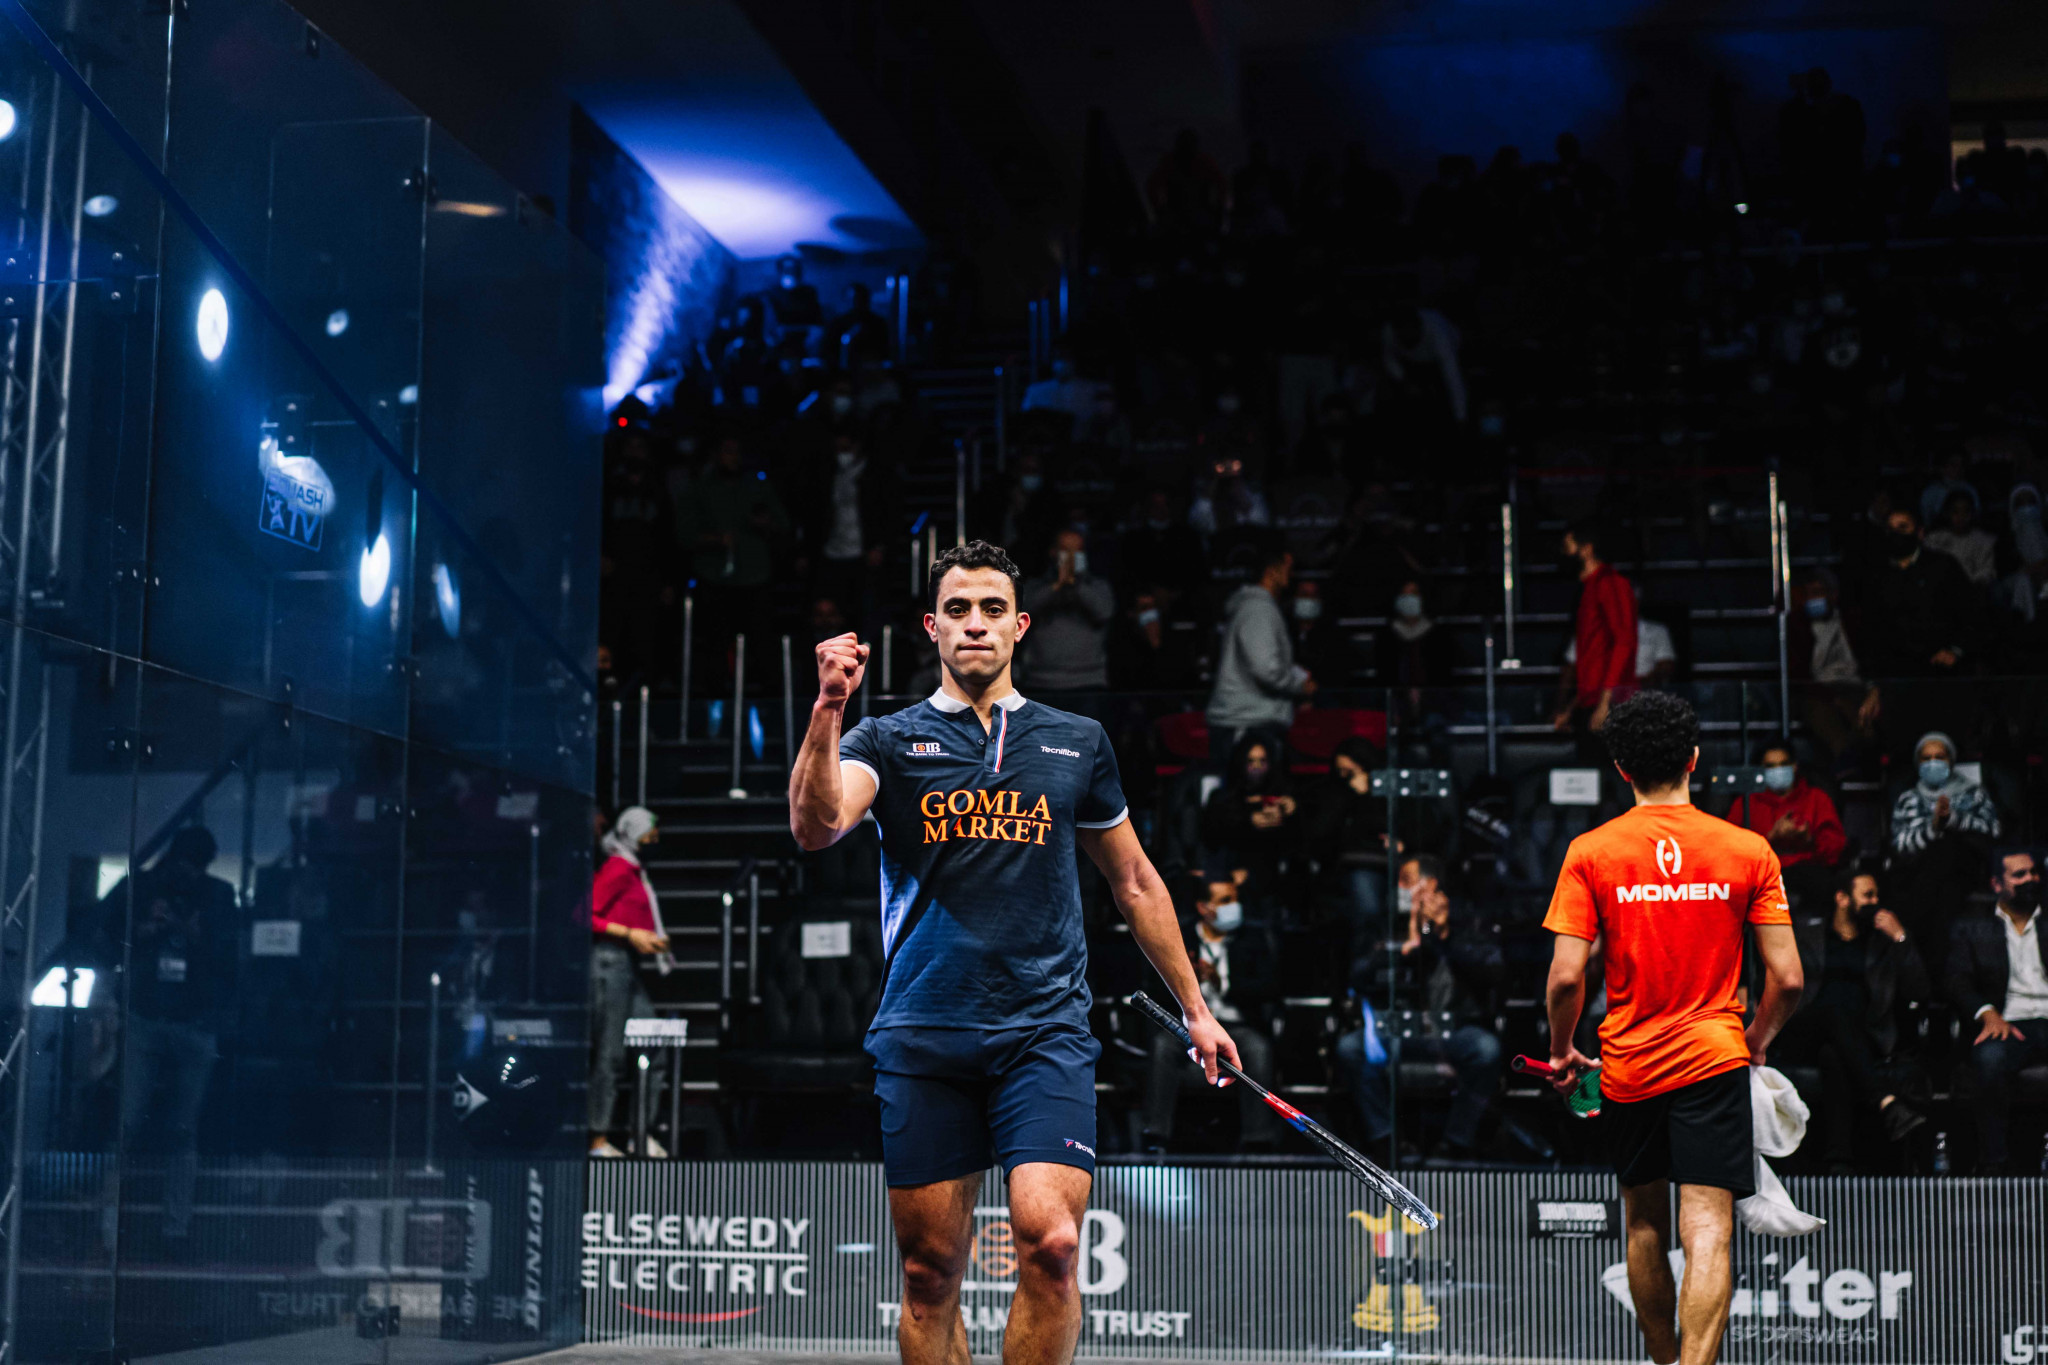 Defending champion Dessouky to face ElShorbagy in Black Ball Squash Open final